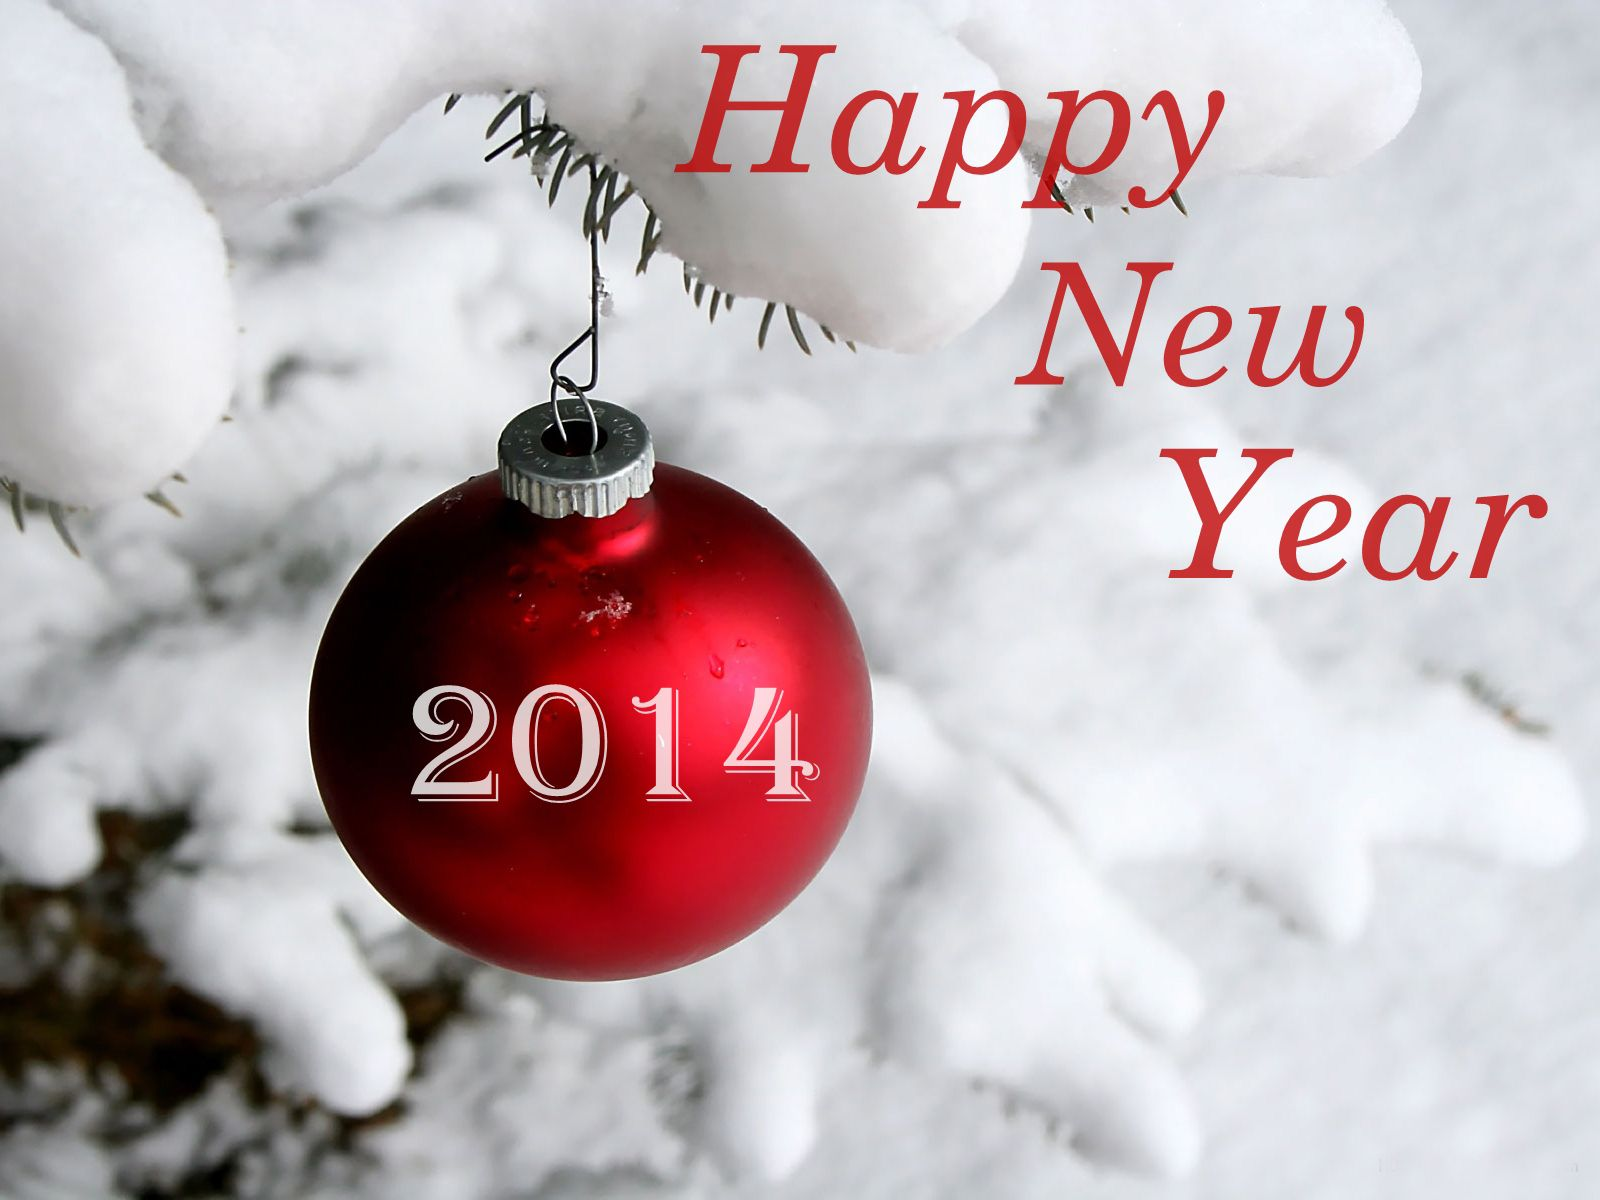 Free clip art religious new year happy new year 2014 free free clip art religious new year happy new year 2014 free download hd images voltagebd Image collections